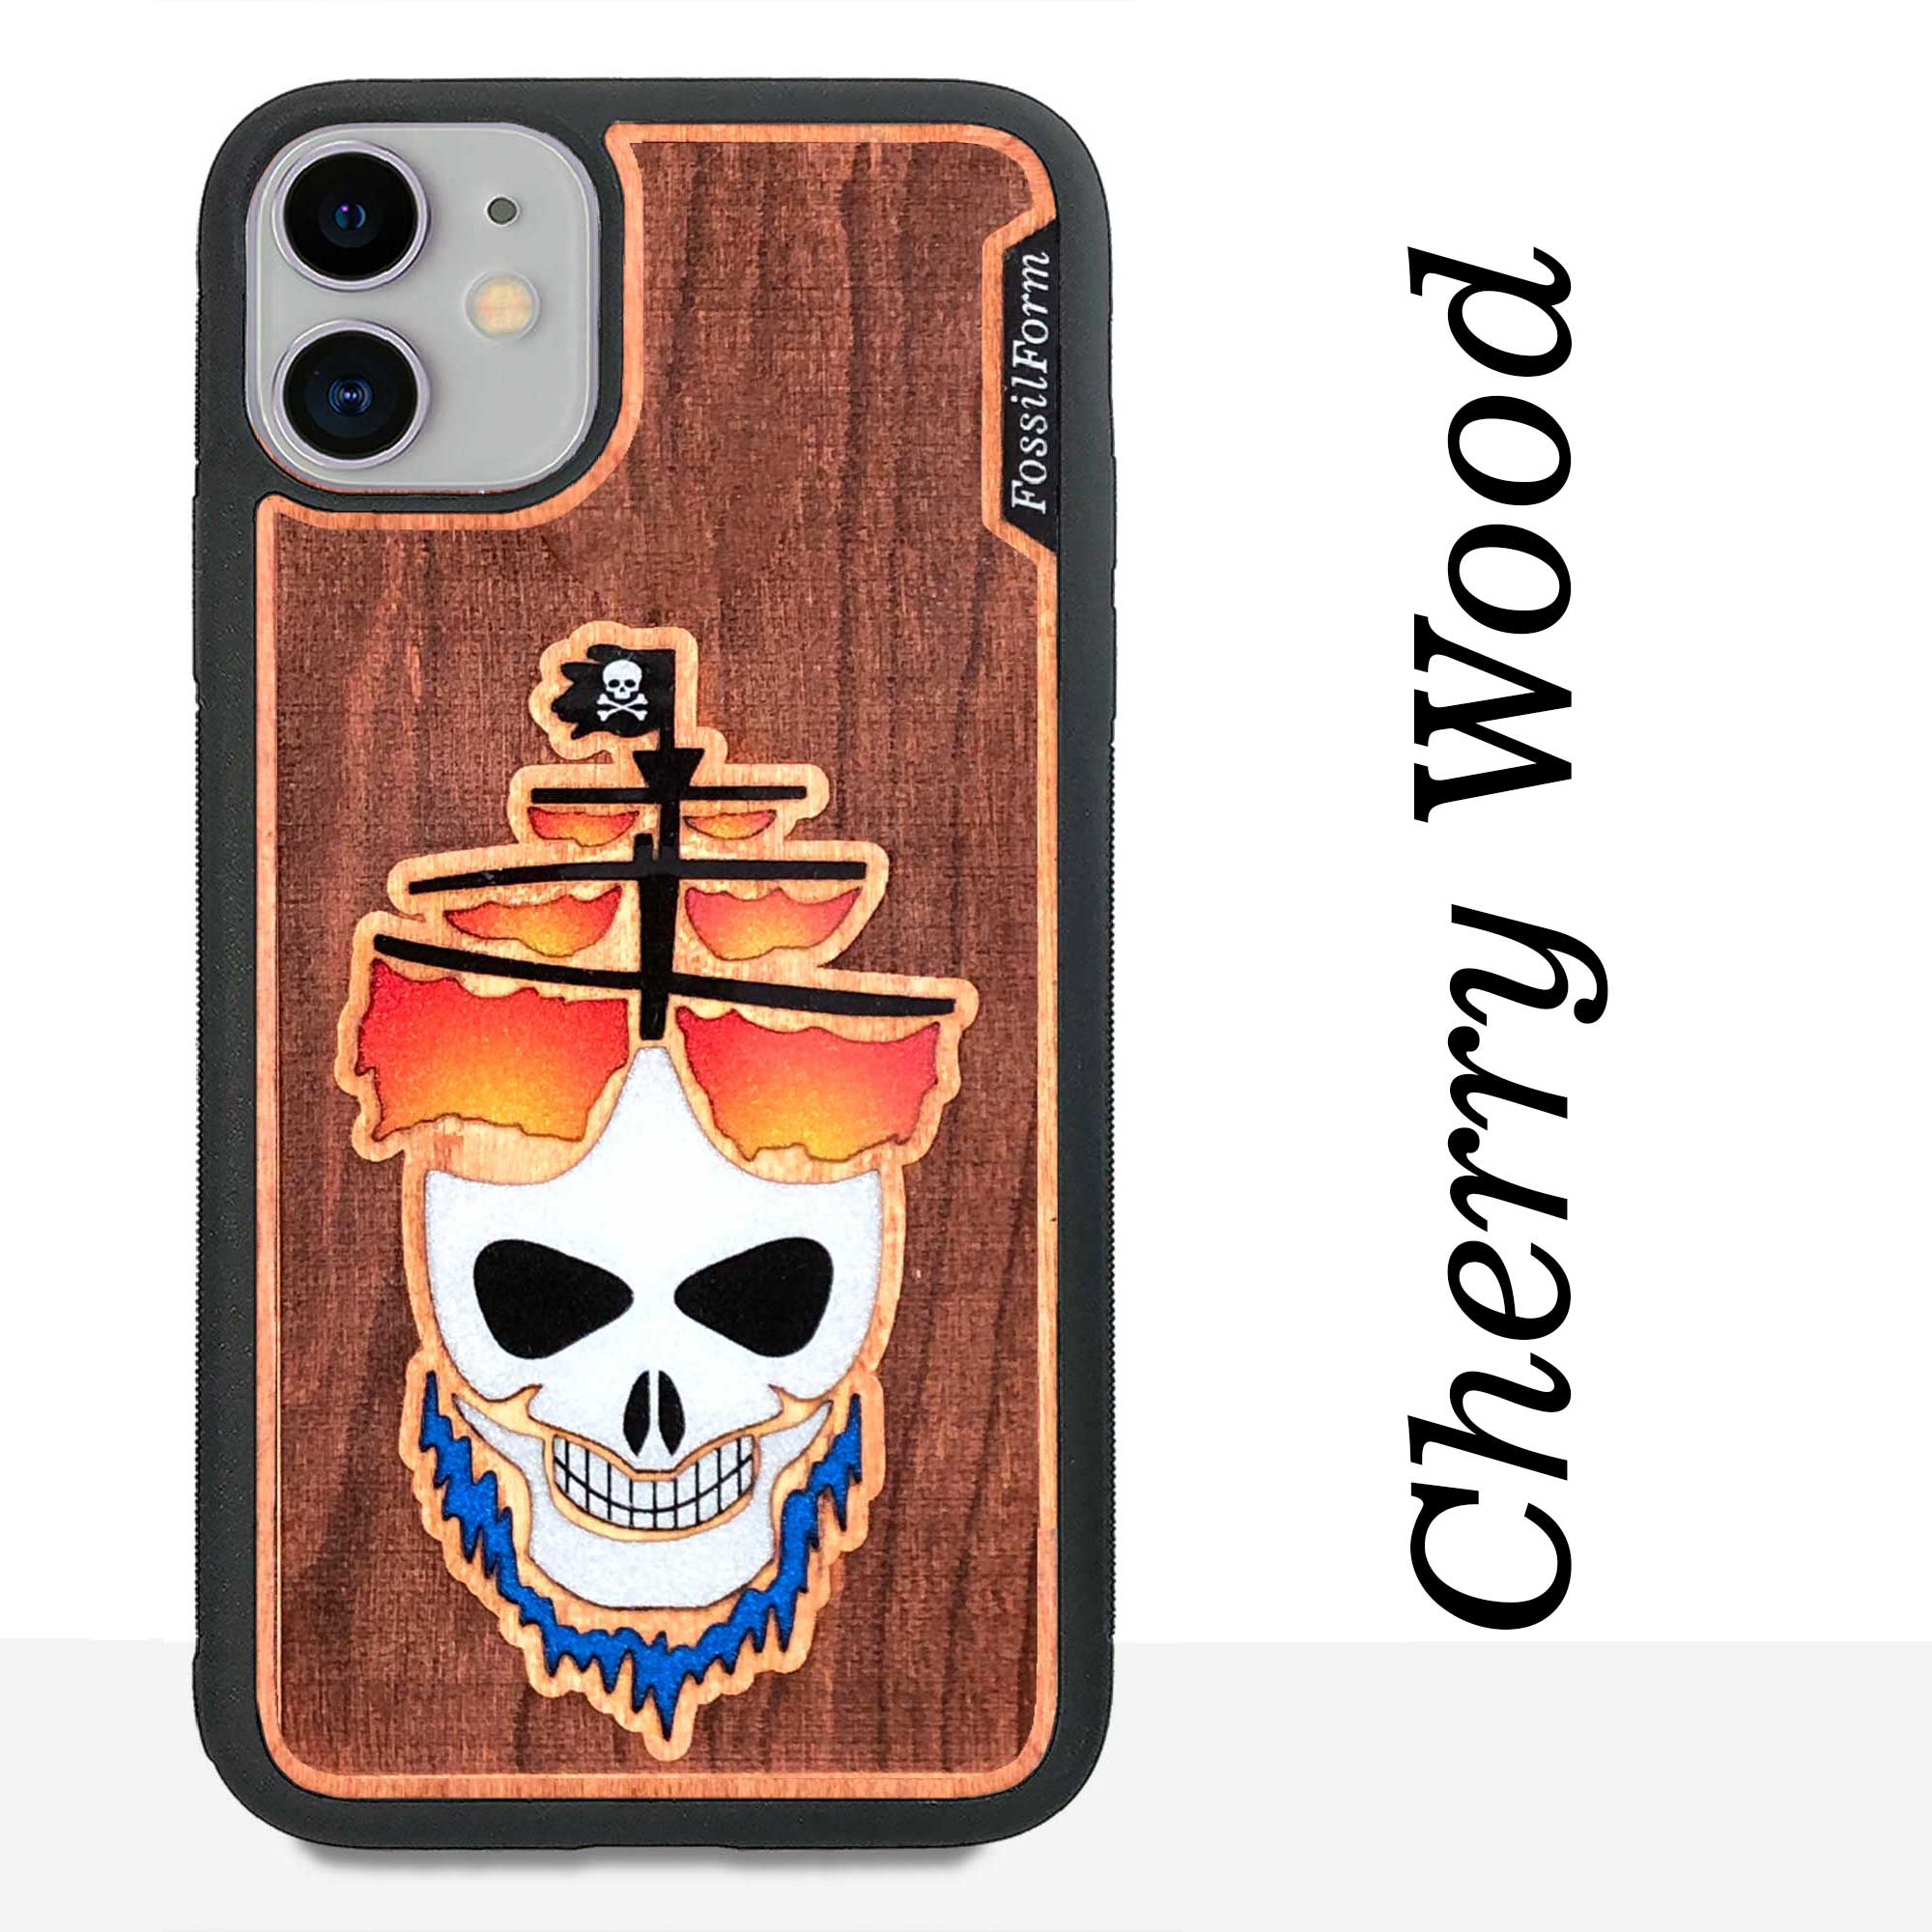 Ghost Pirate Ship - Engraved Wood & Resin Case - Black